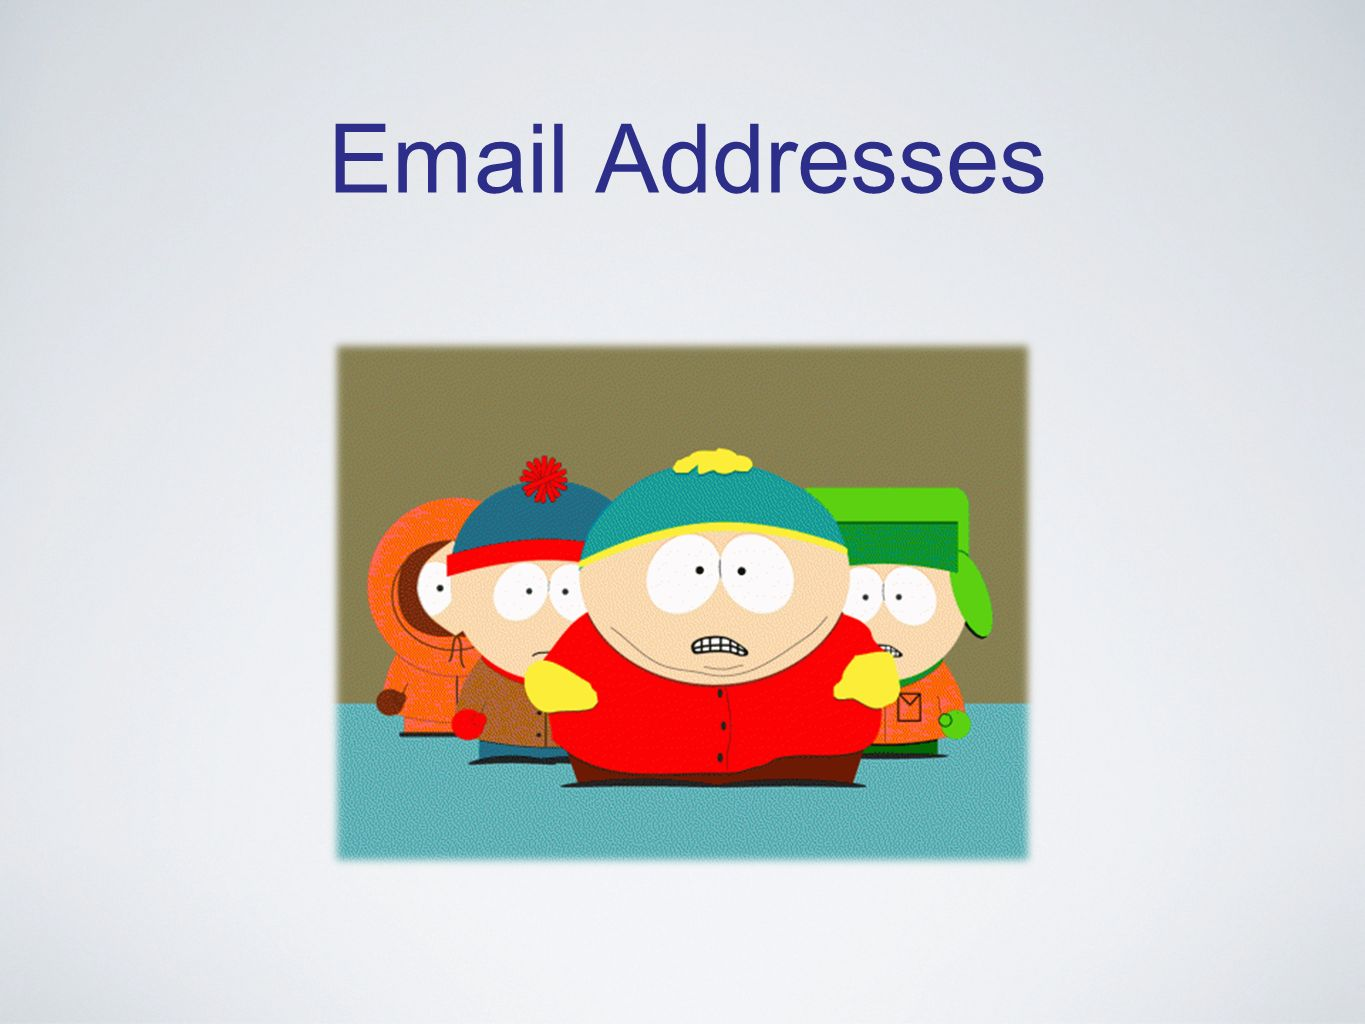 Email Addresses